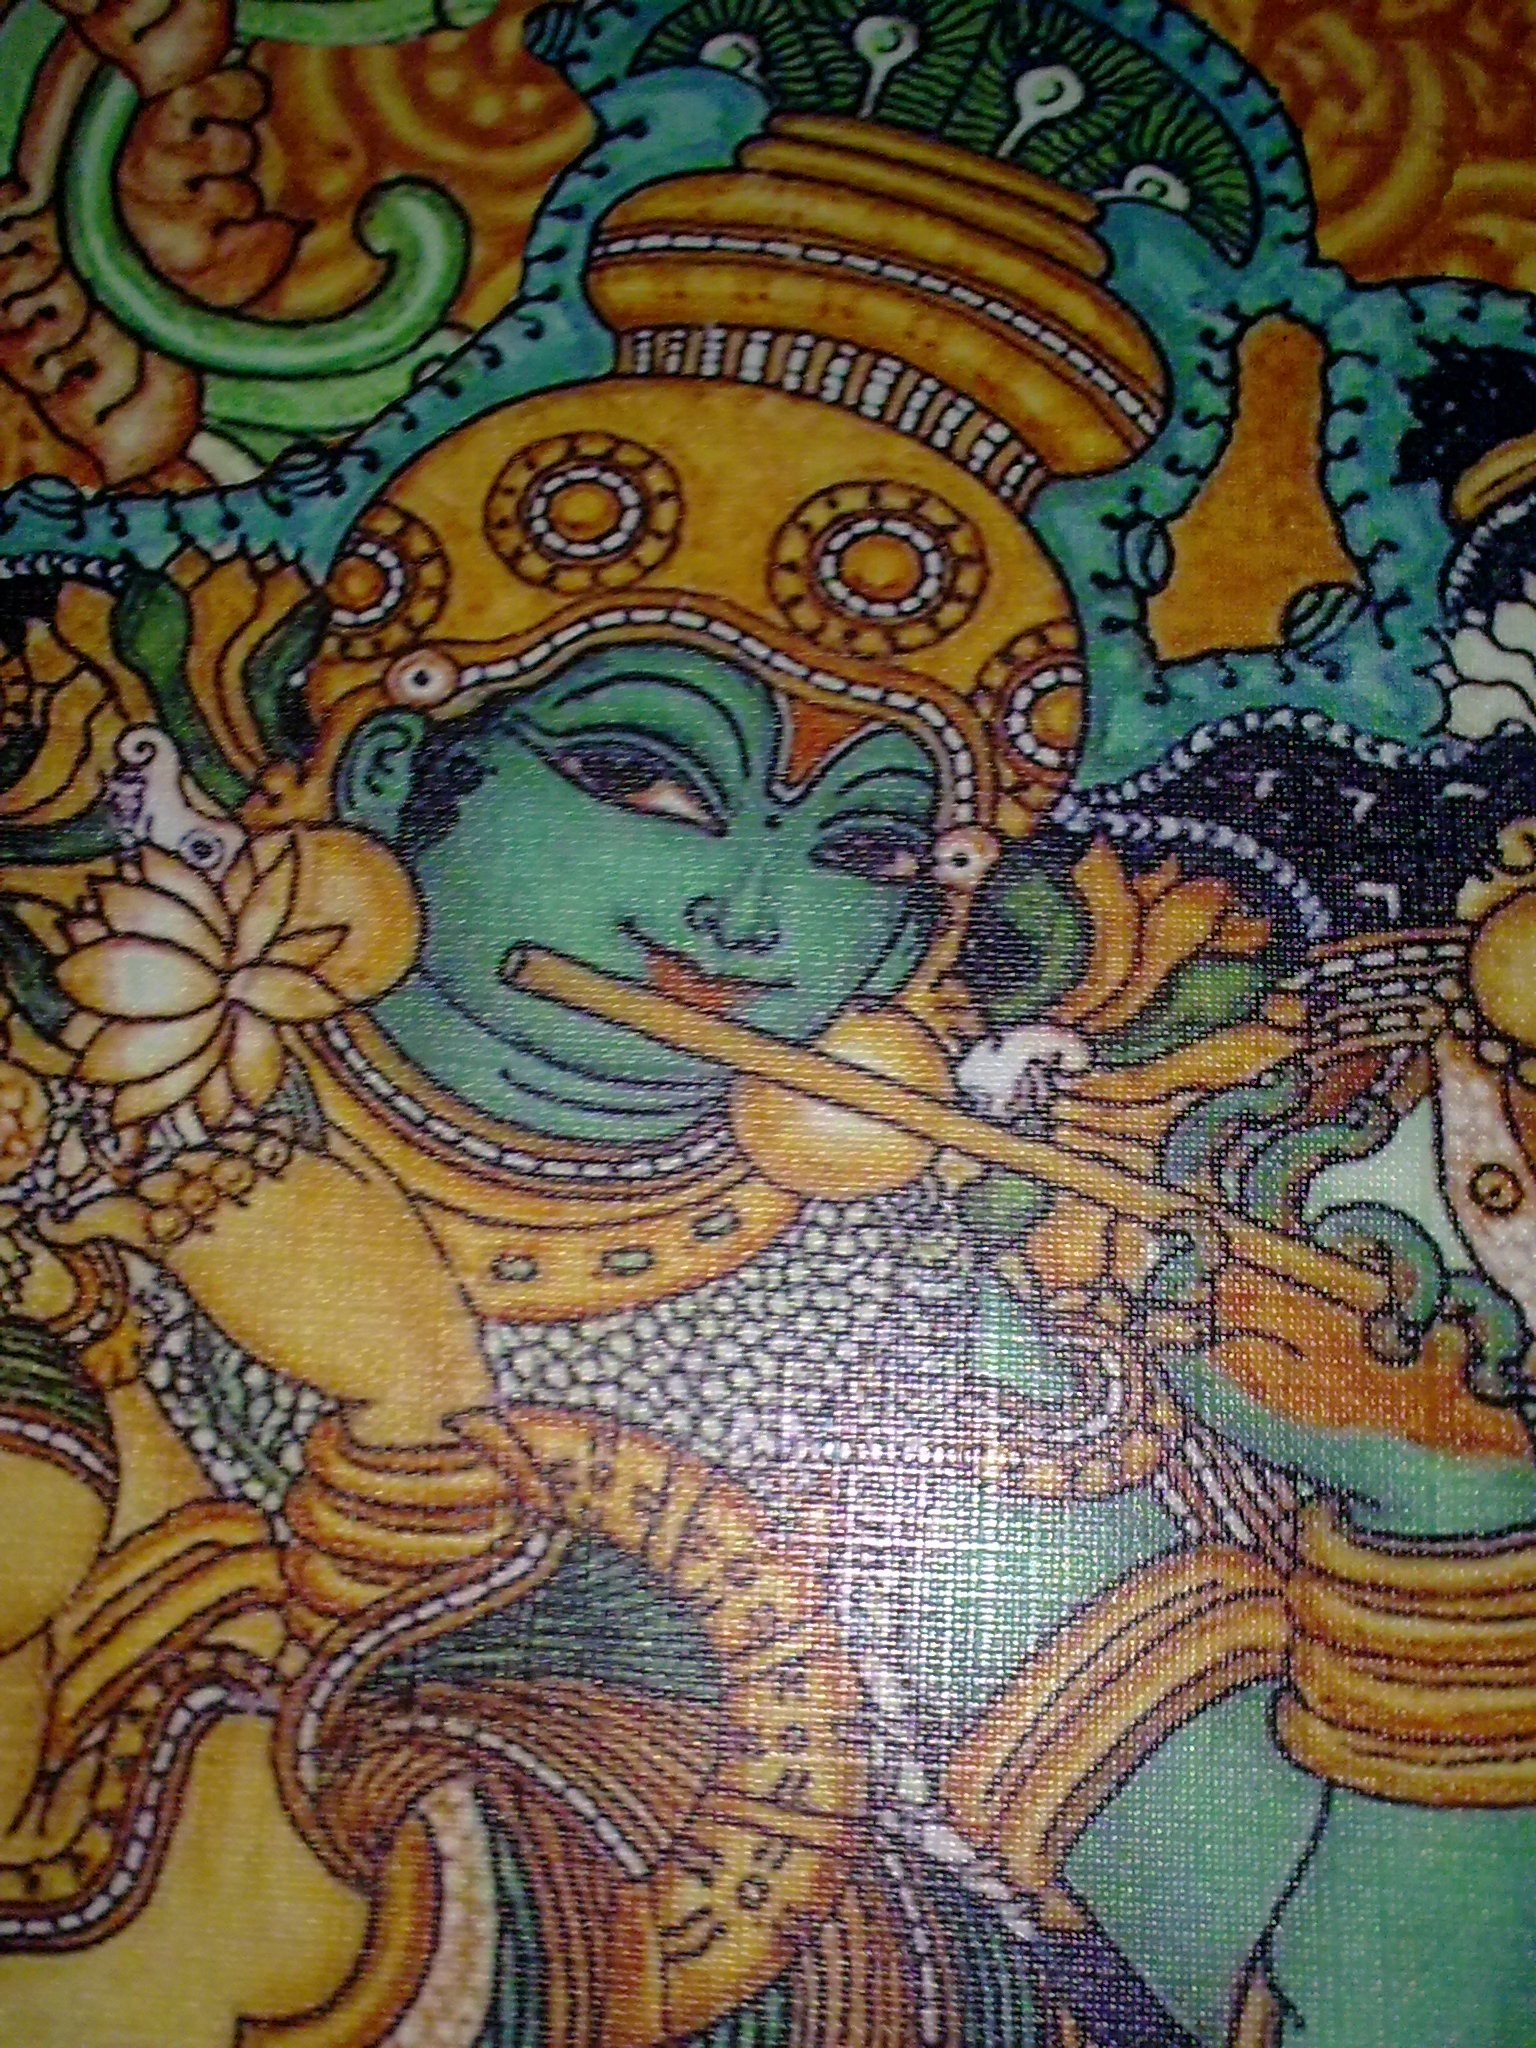 Radha with krishna playing flute kerala mural painting art for Mural radha krishna